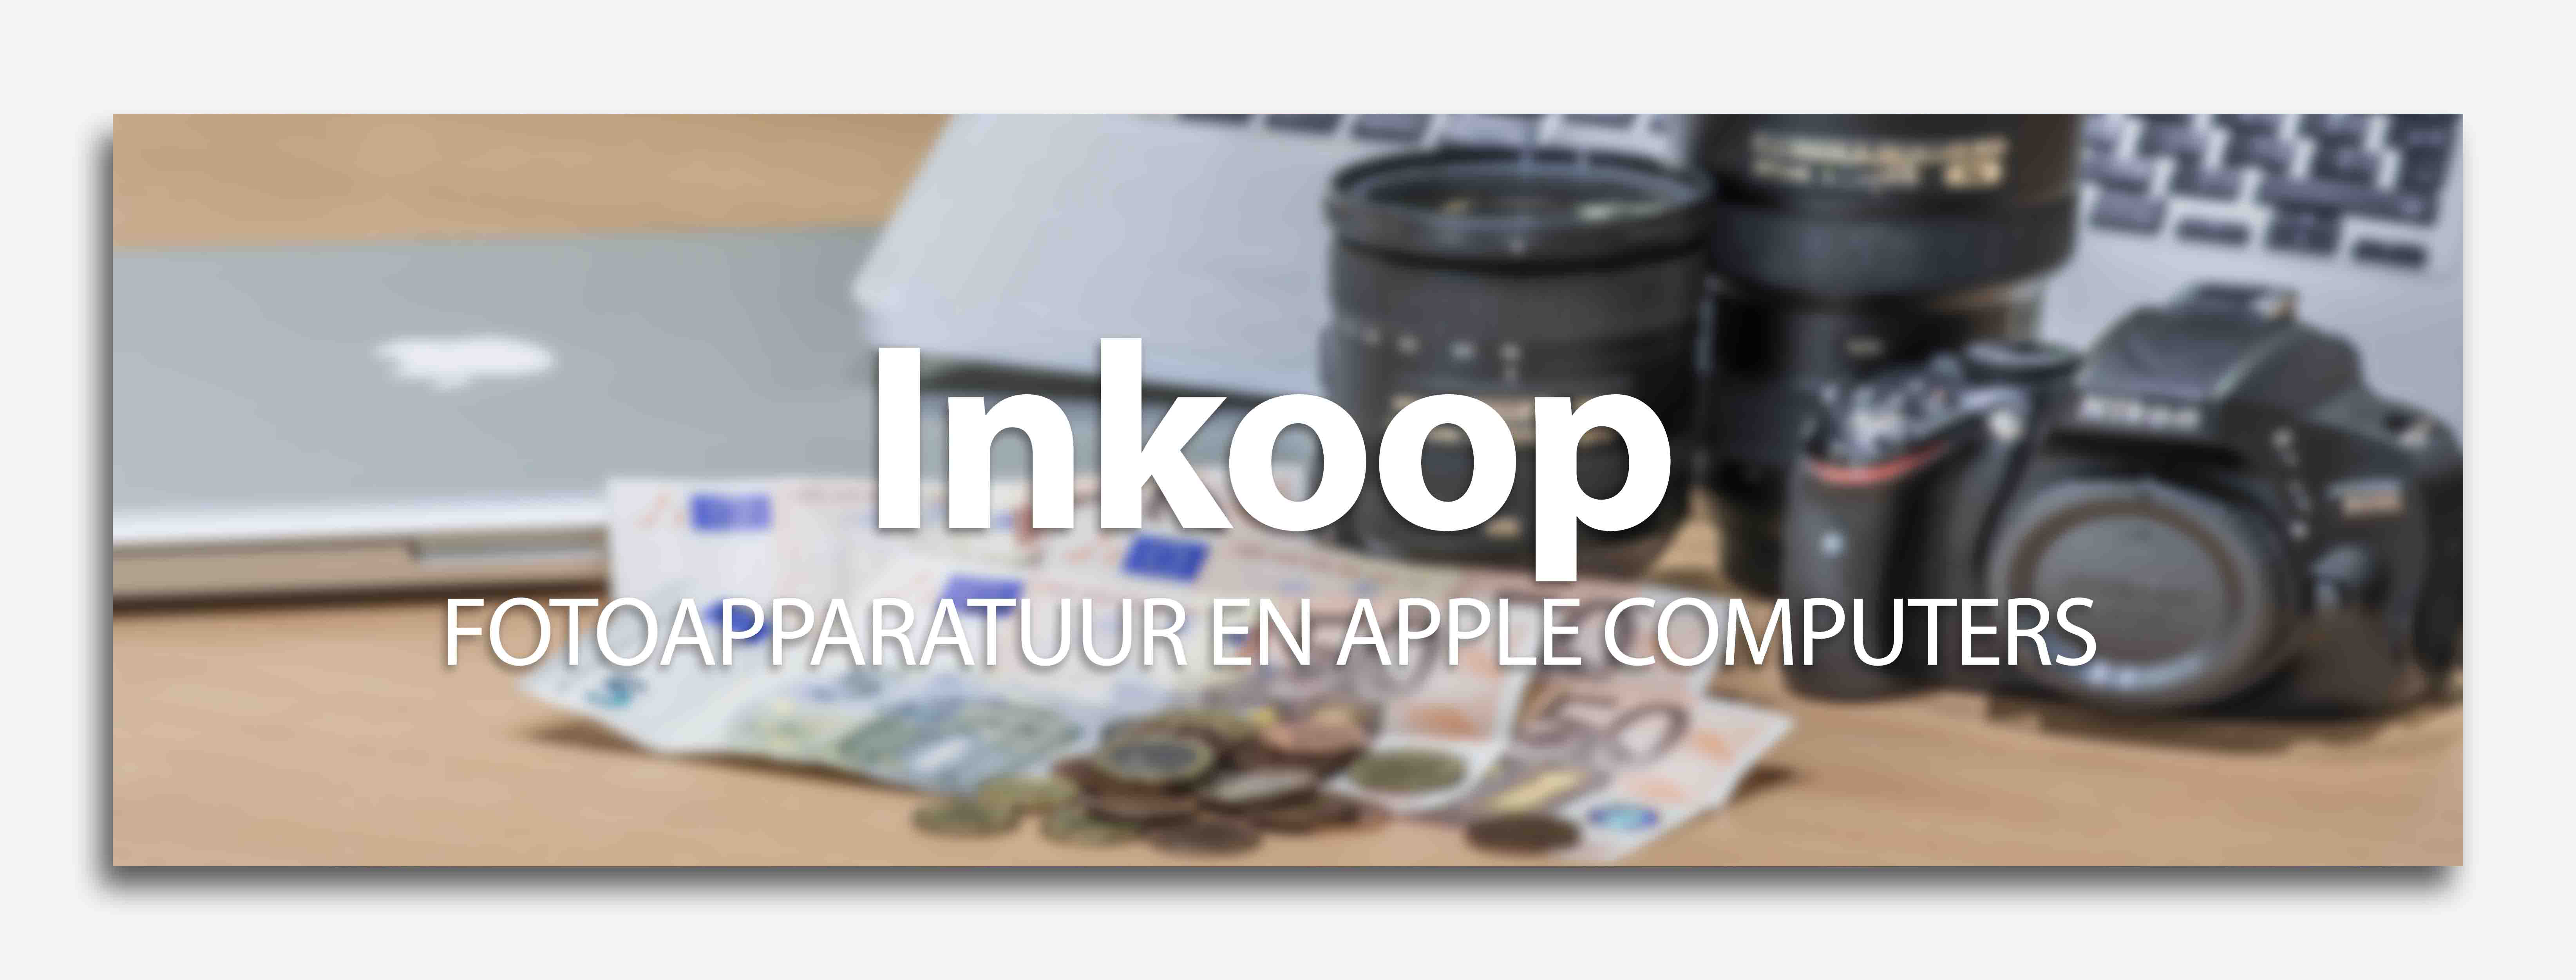 inkoop apple iMac macbook pro iPhone iPod foto camera objectief lens